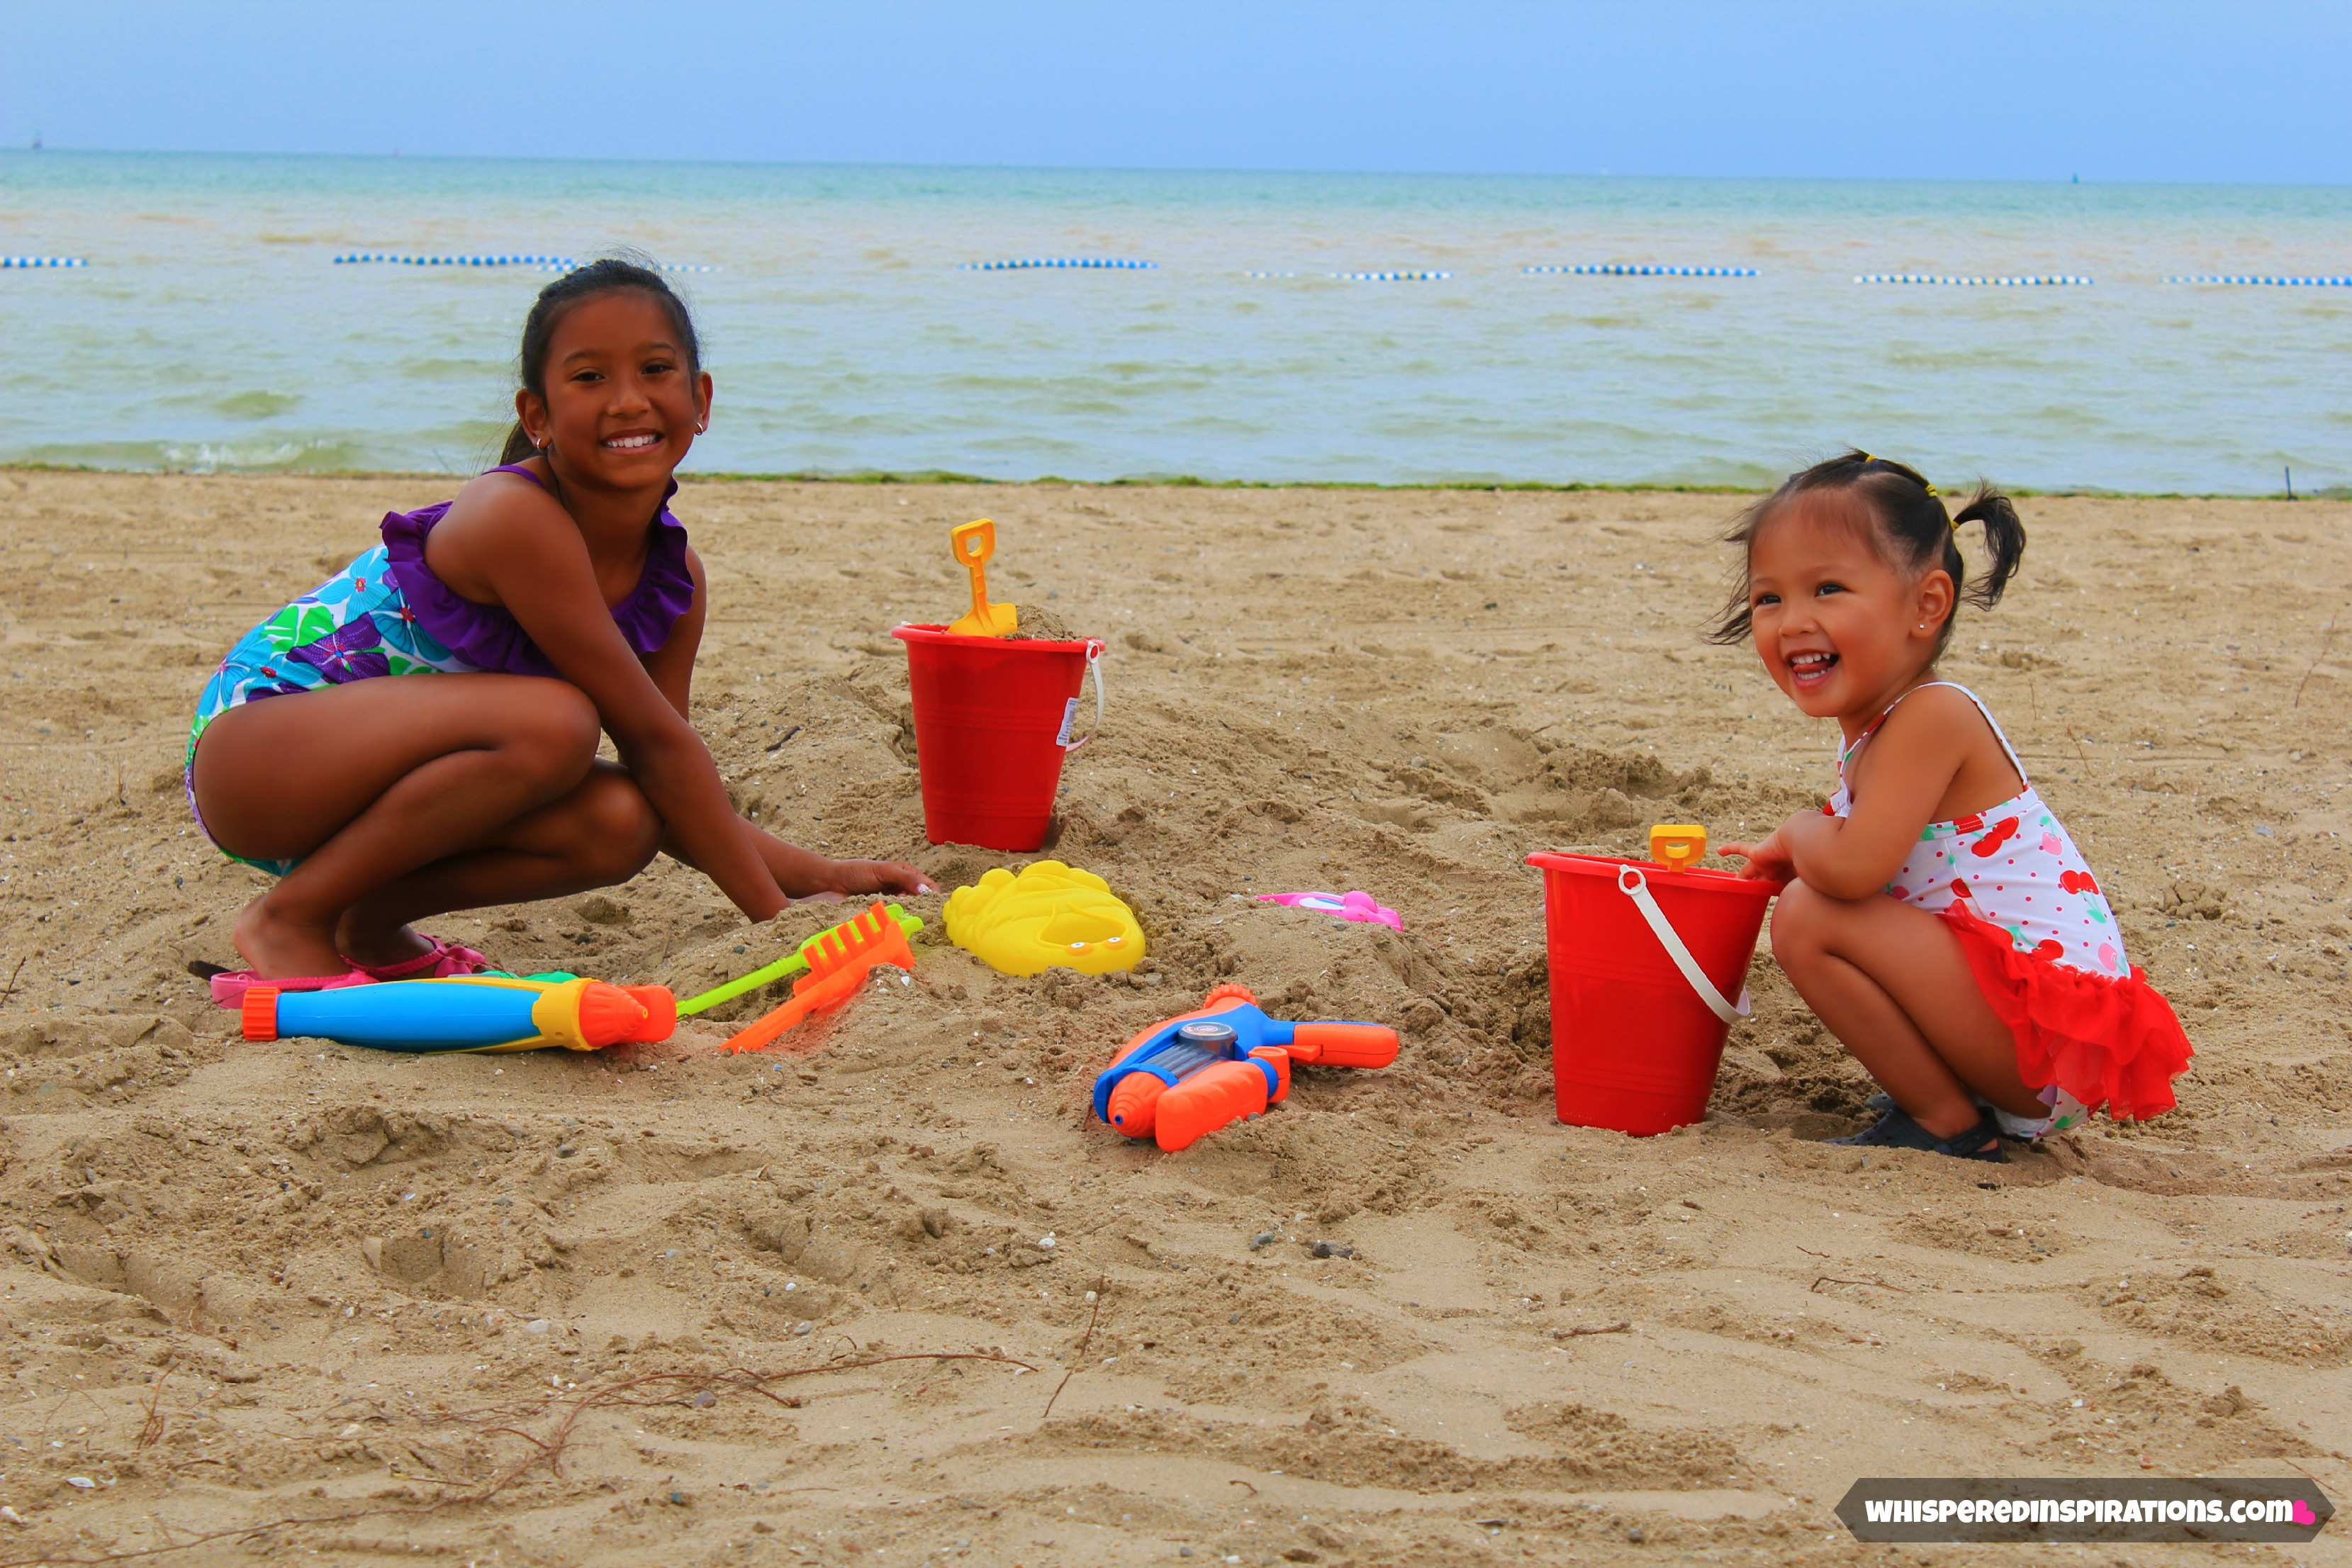 Summer Fun: Things You Need for The Beach. Enjoy a Day of Sunbathing, Sandcastles, Water Guns, Treats–Oh My! #cbias